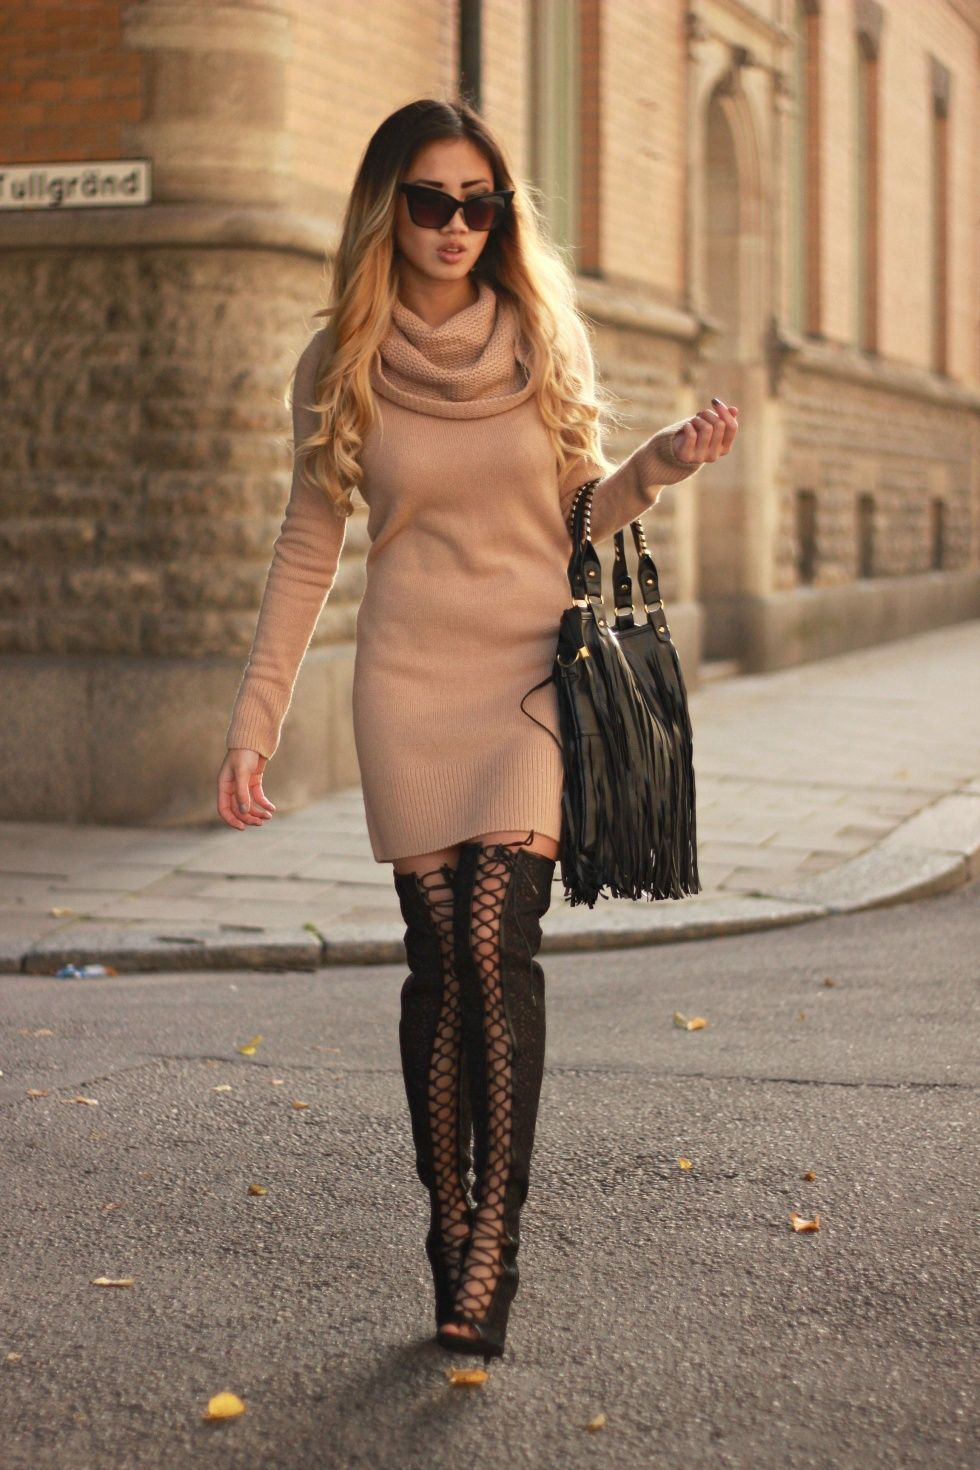 Lace up over the knee boots / Thigh high boots outfit